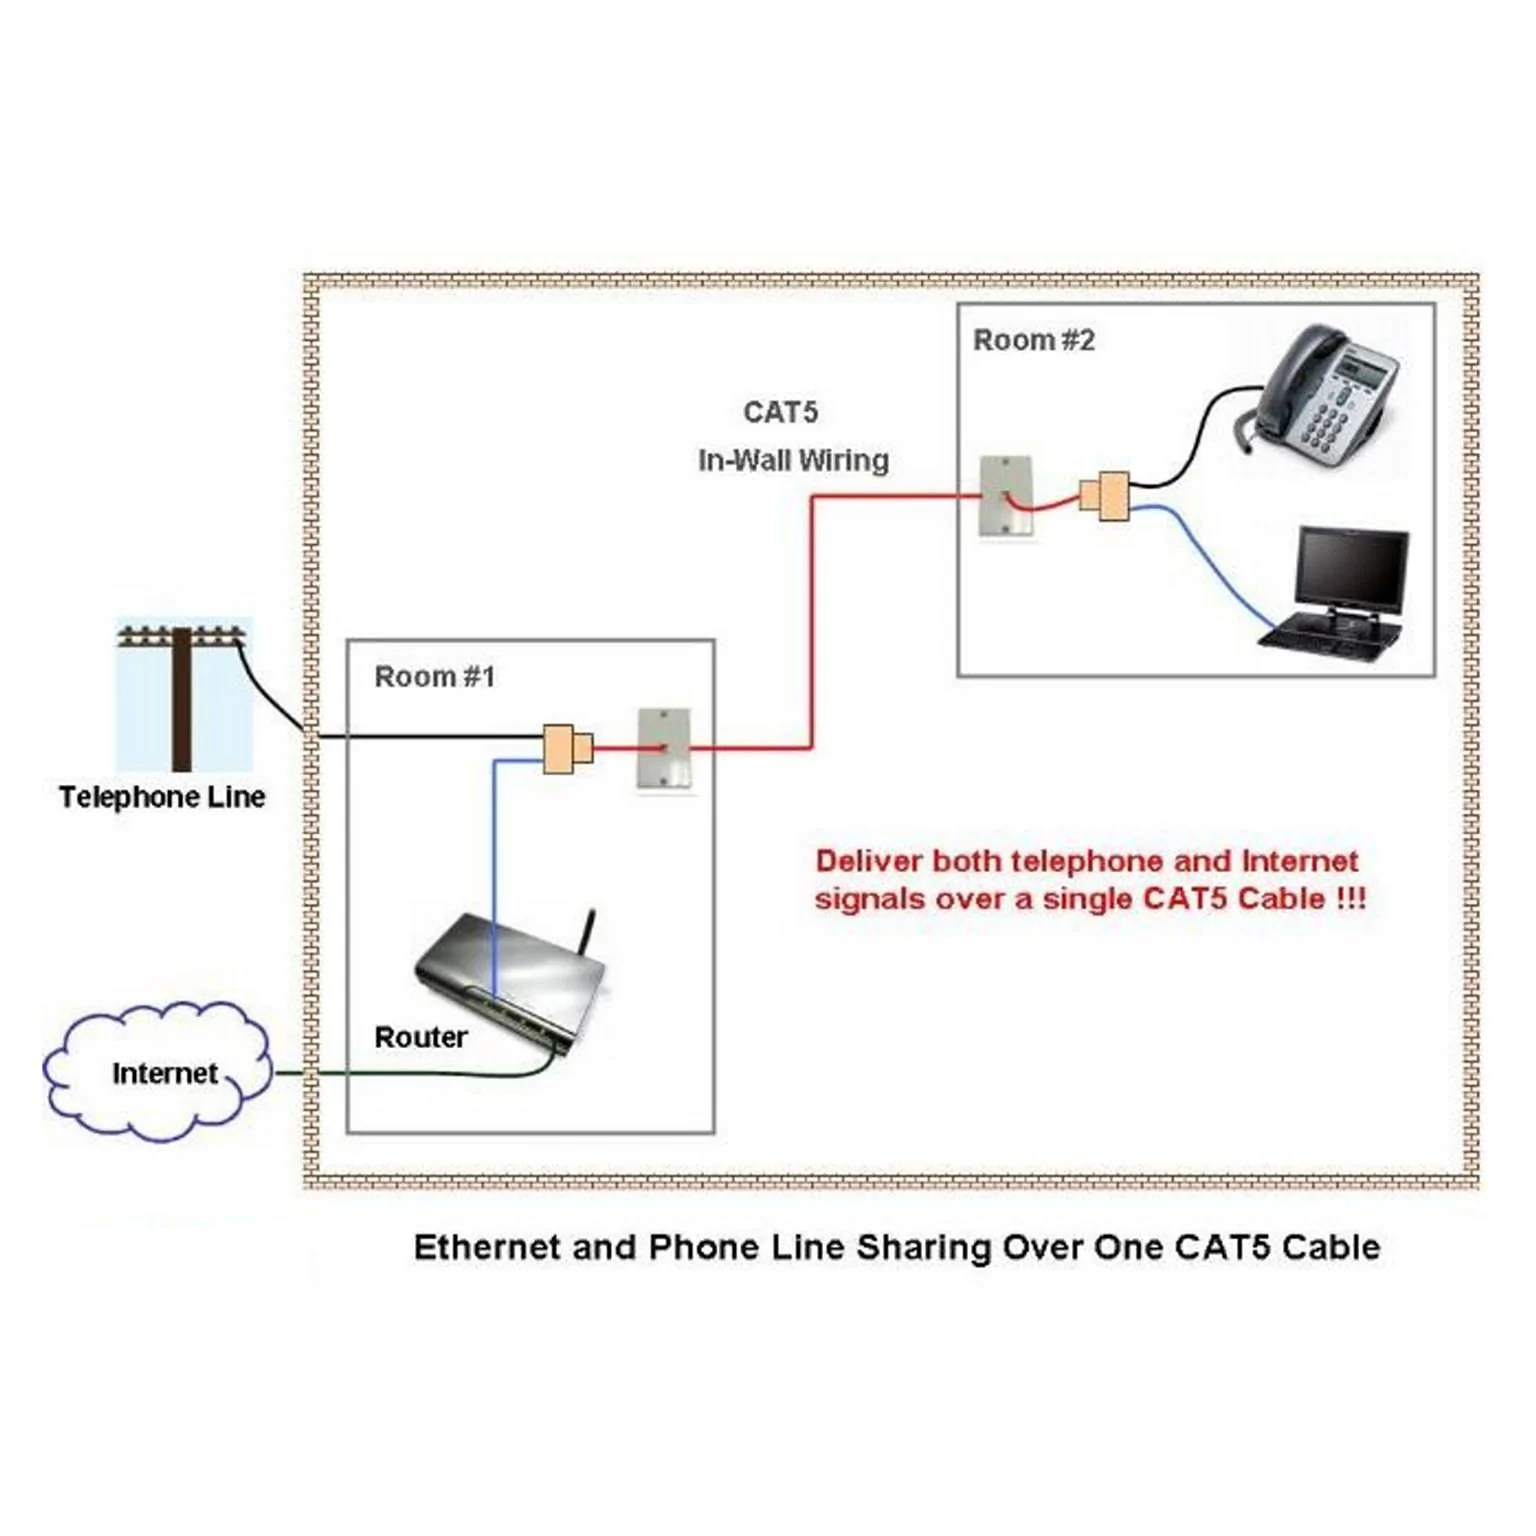 cable with ethernet cat5 phone wiring diagram wiring diagram ethernet phone wiring diagram [ 1536 x 1536 Pixel ]